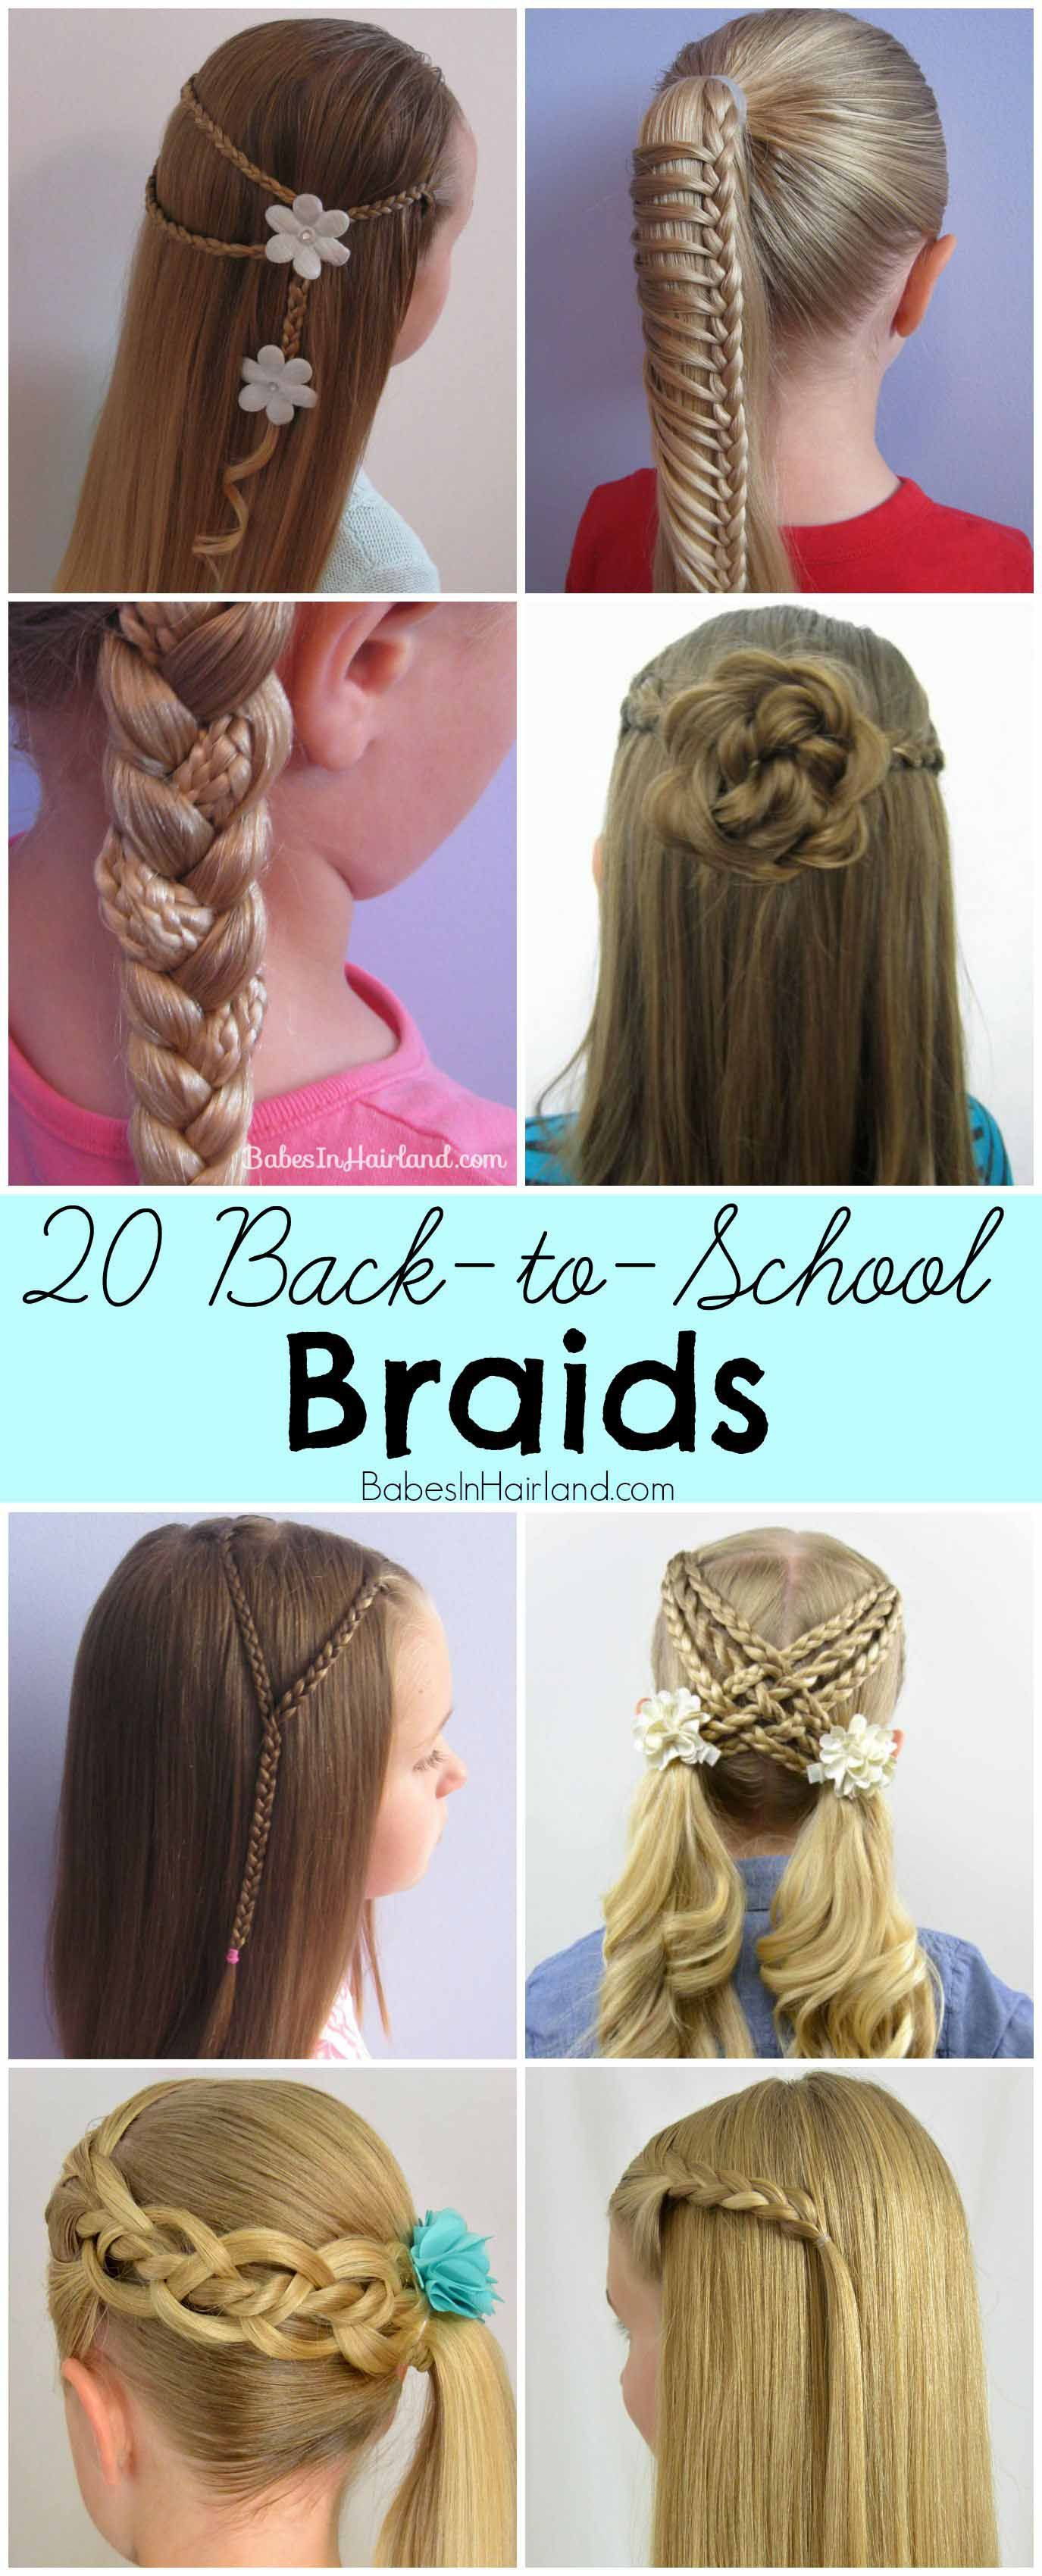 Hairstyles For School Pleasing 20 Backtoschool Braids  Beautiful Braids Hair Style And Kid Braids